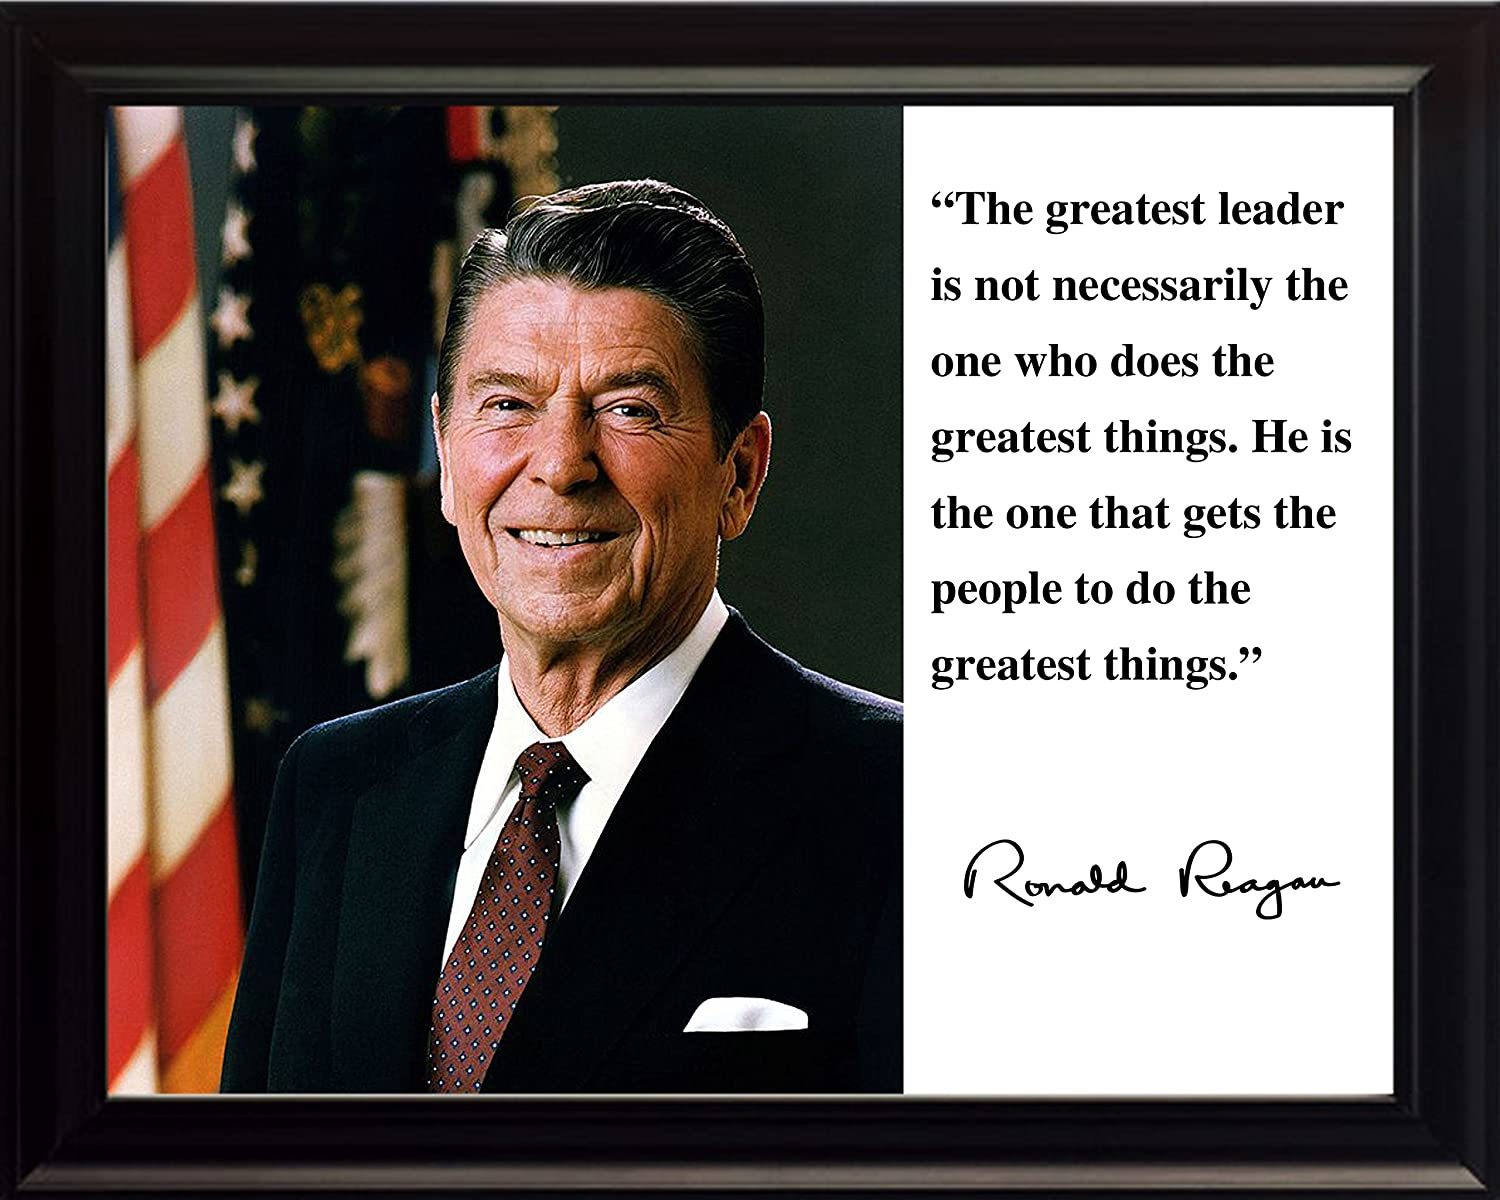 Ronald Reagan President the Greatest Leader Quote 8x10 Framed Photograph wesellphotos